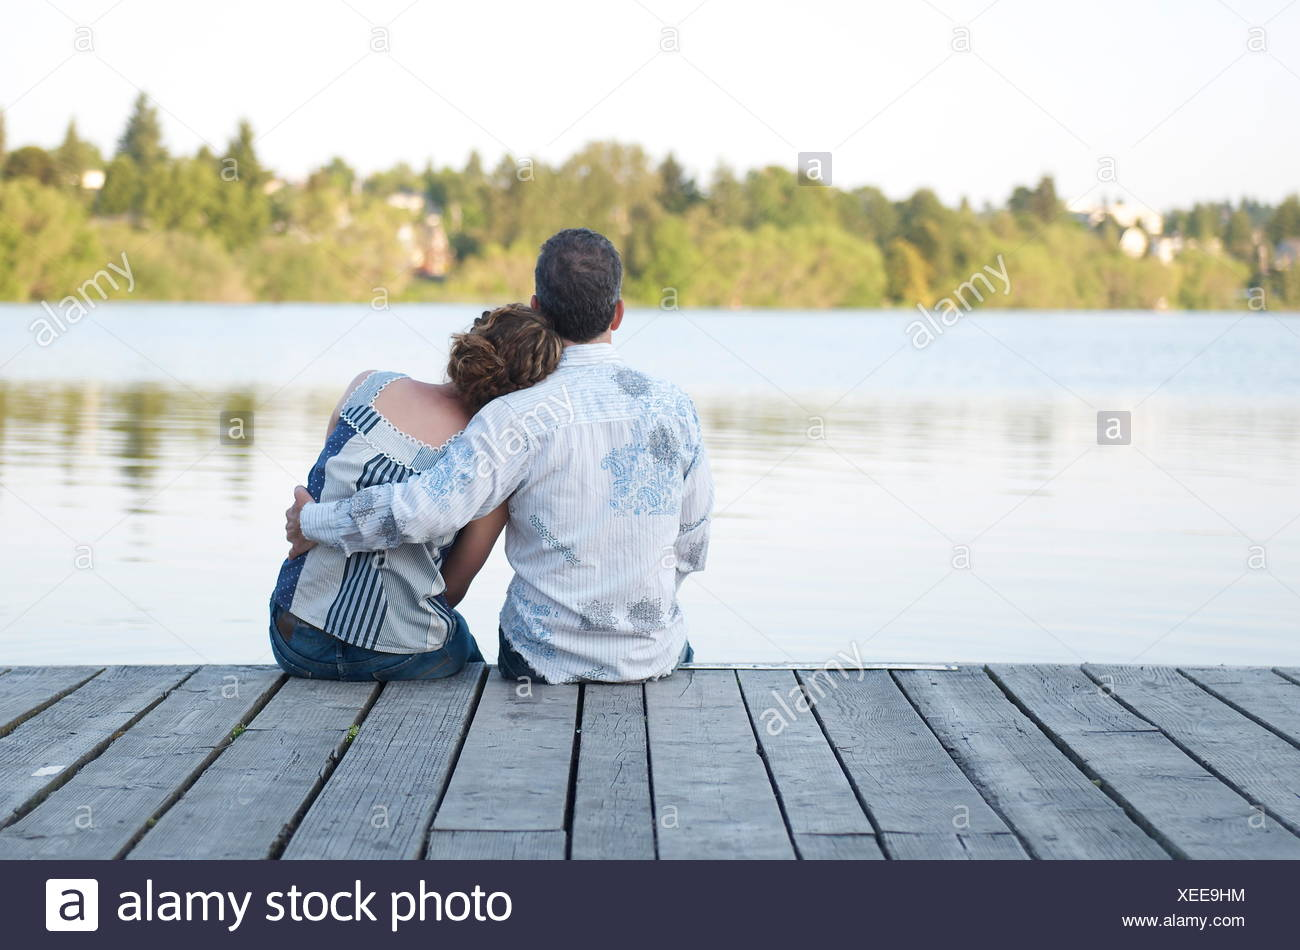 Rear view of a Couple sitting on a wooden jetty embracing - Stock Image